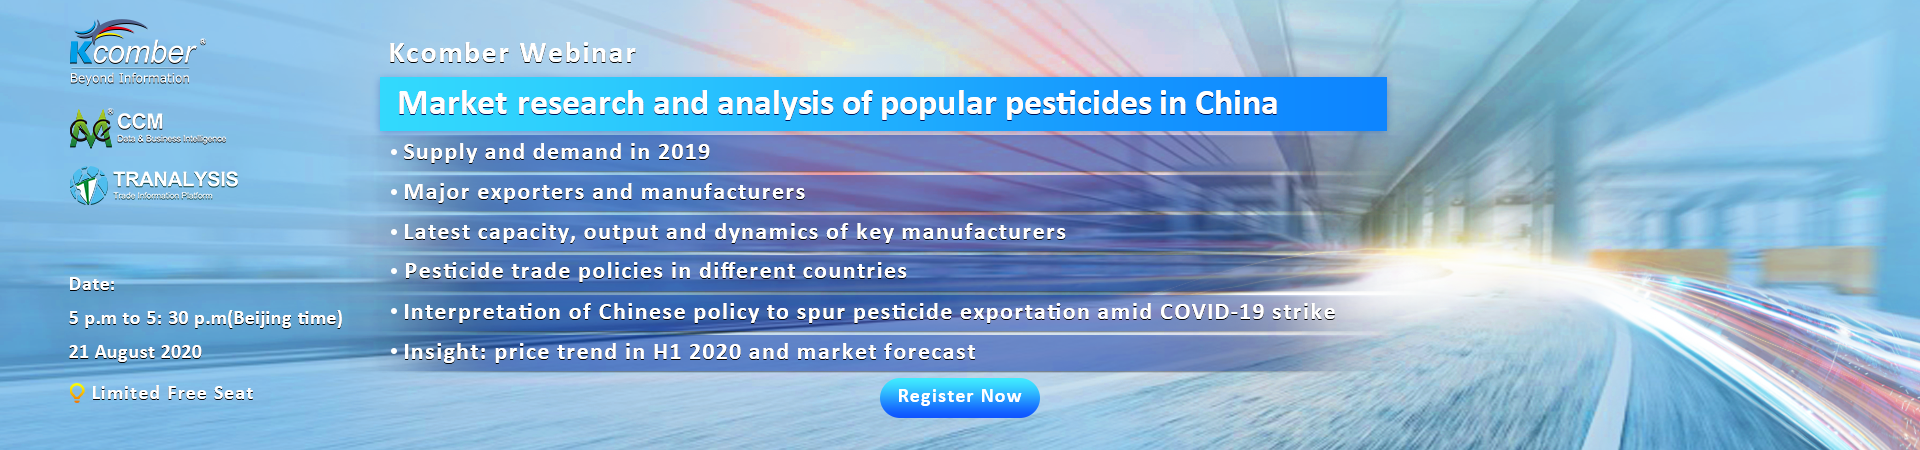 Market research and analysis of popular pesticides in China